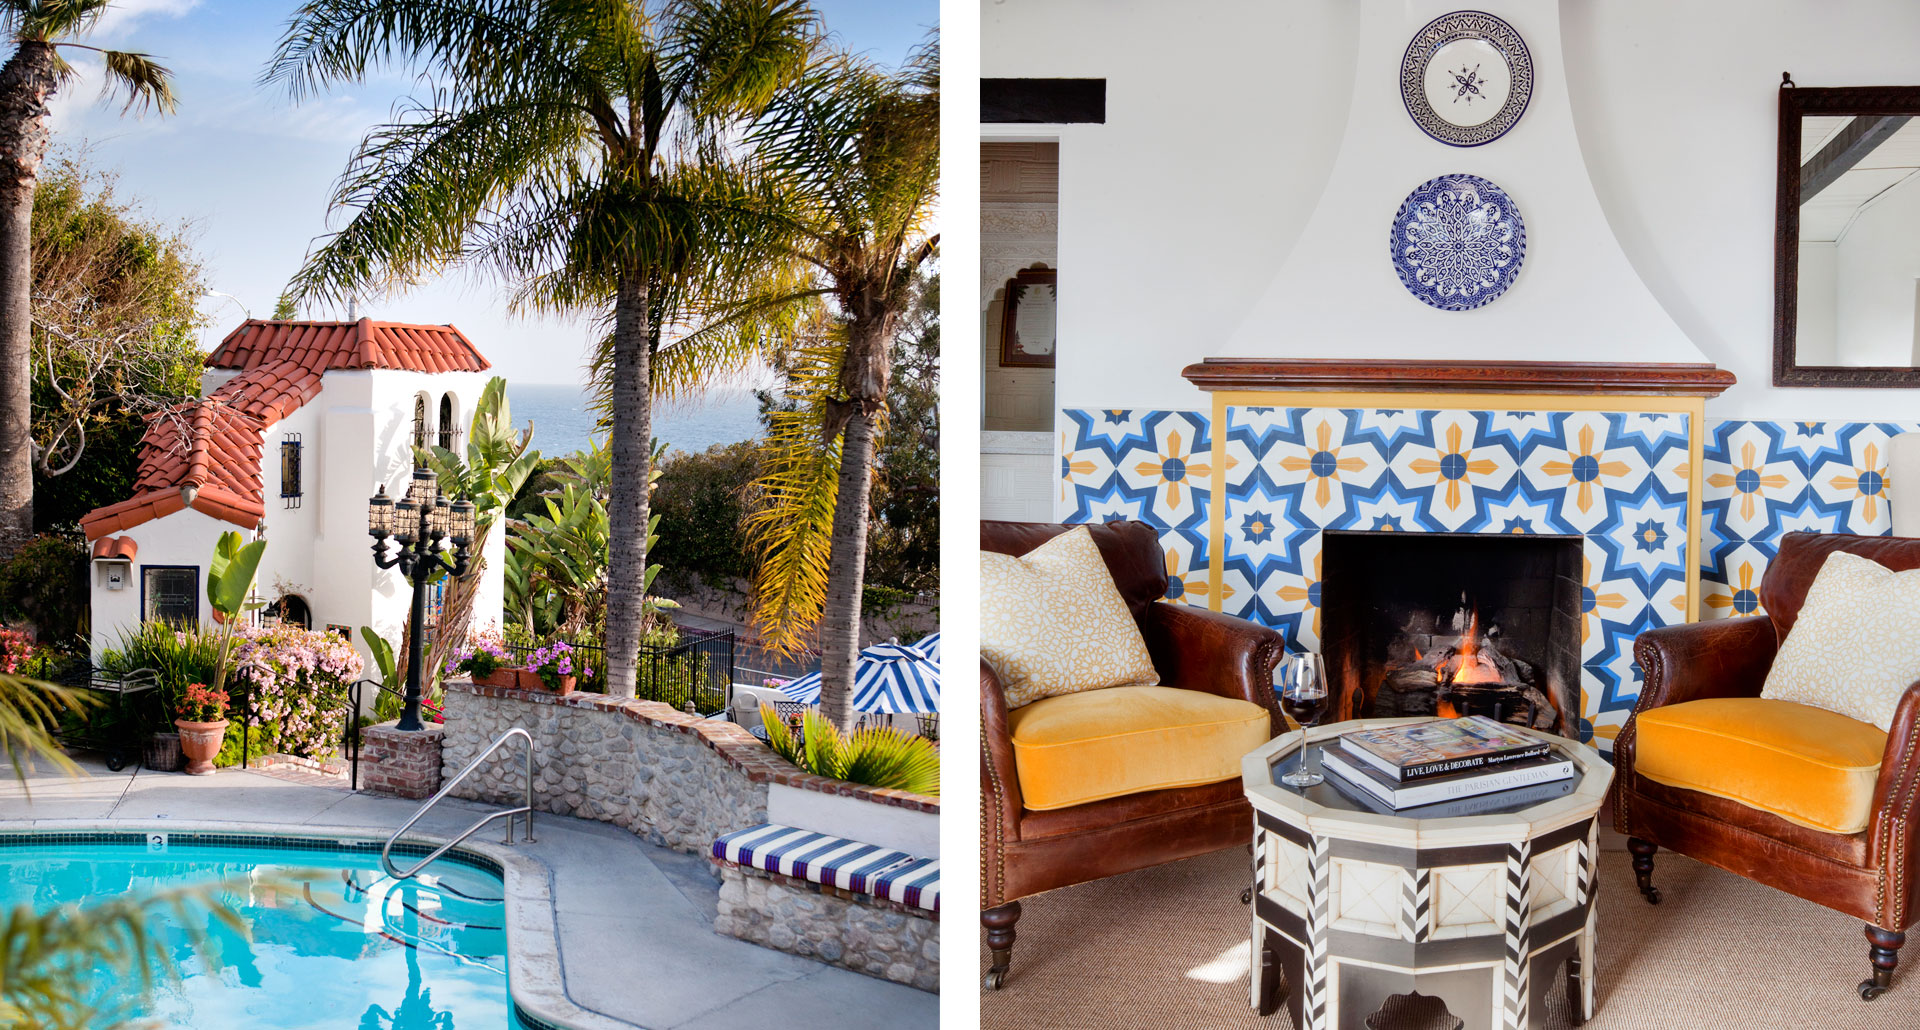 Casa Laguna Hotel & Spa - boutique hotel in Orange County